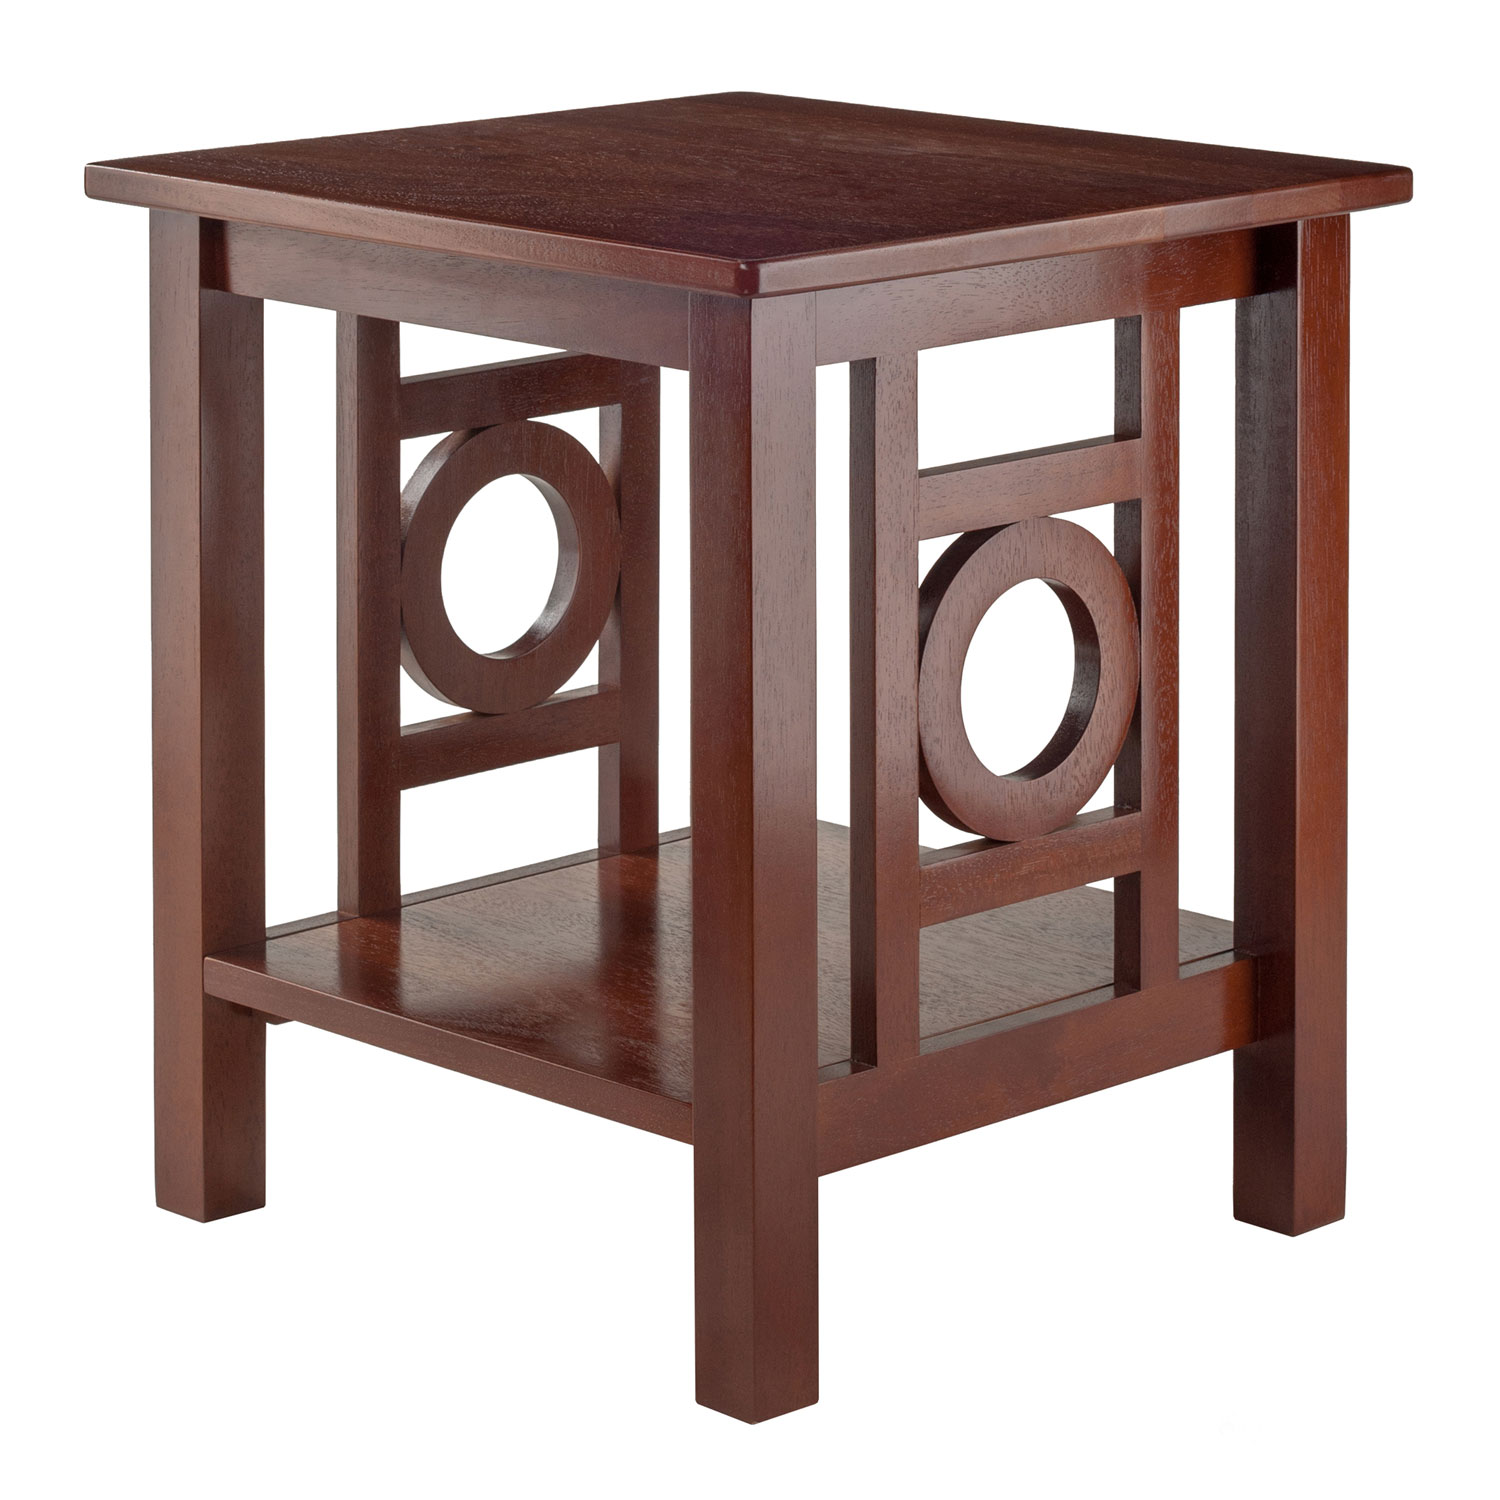 winsome wood ollie end table walnut bellacor accent hover zoom pottery barn rattan coffee battery operated indoor lamps red wingback chair rustic with drawers waterproof outdoor